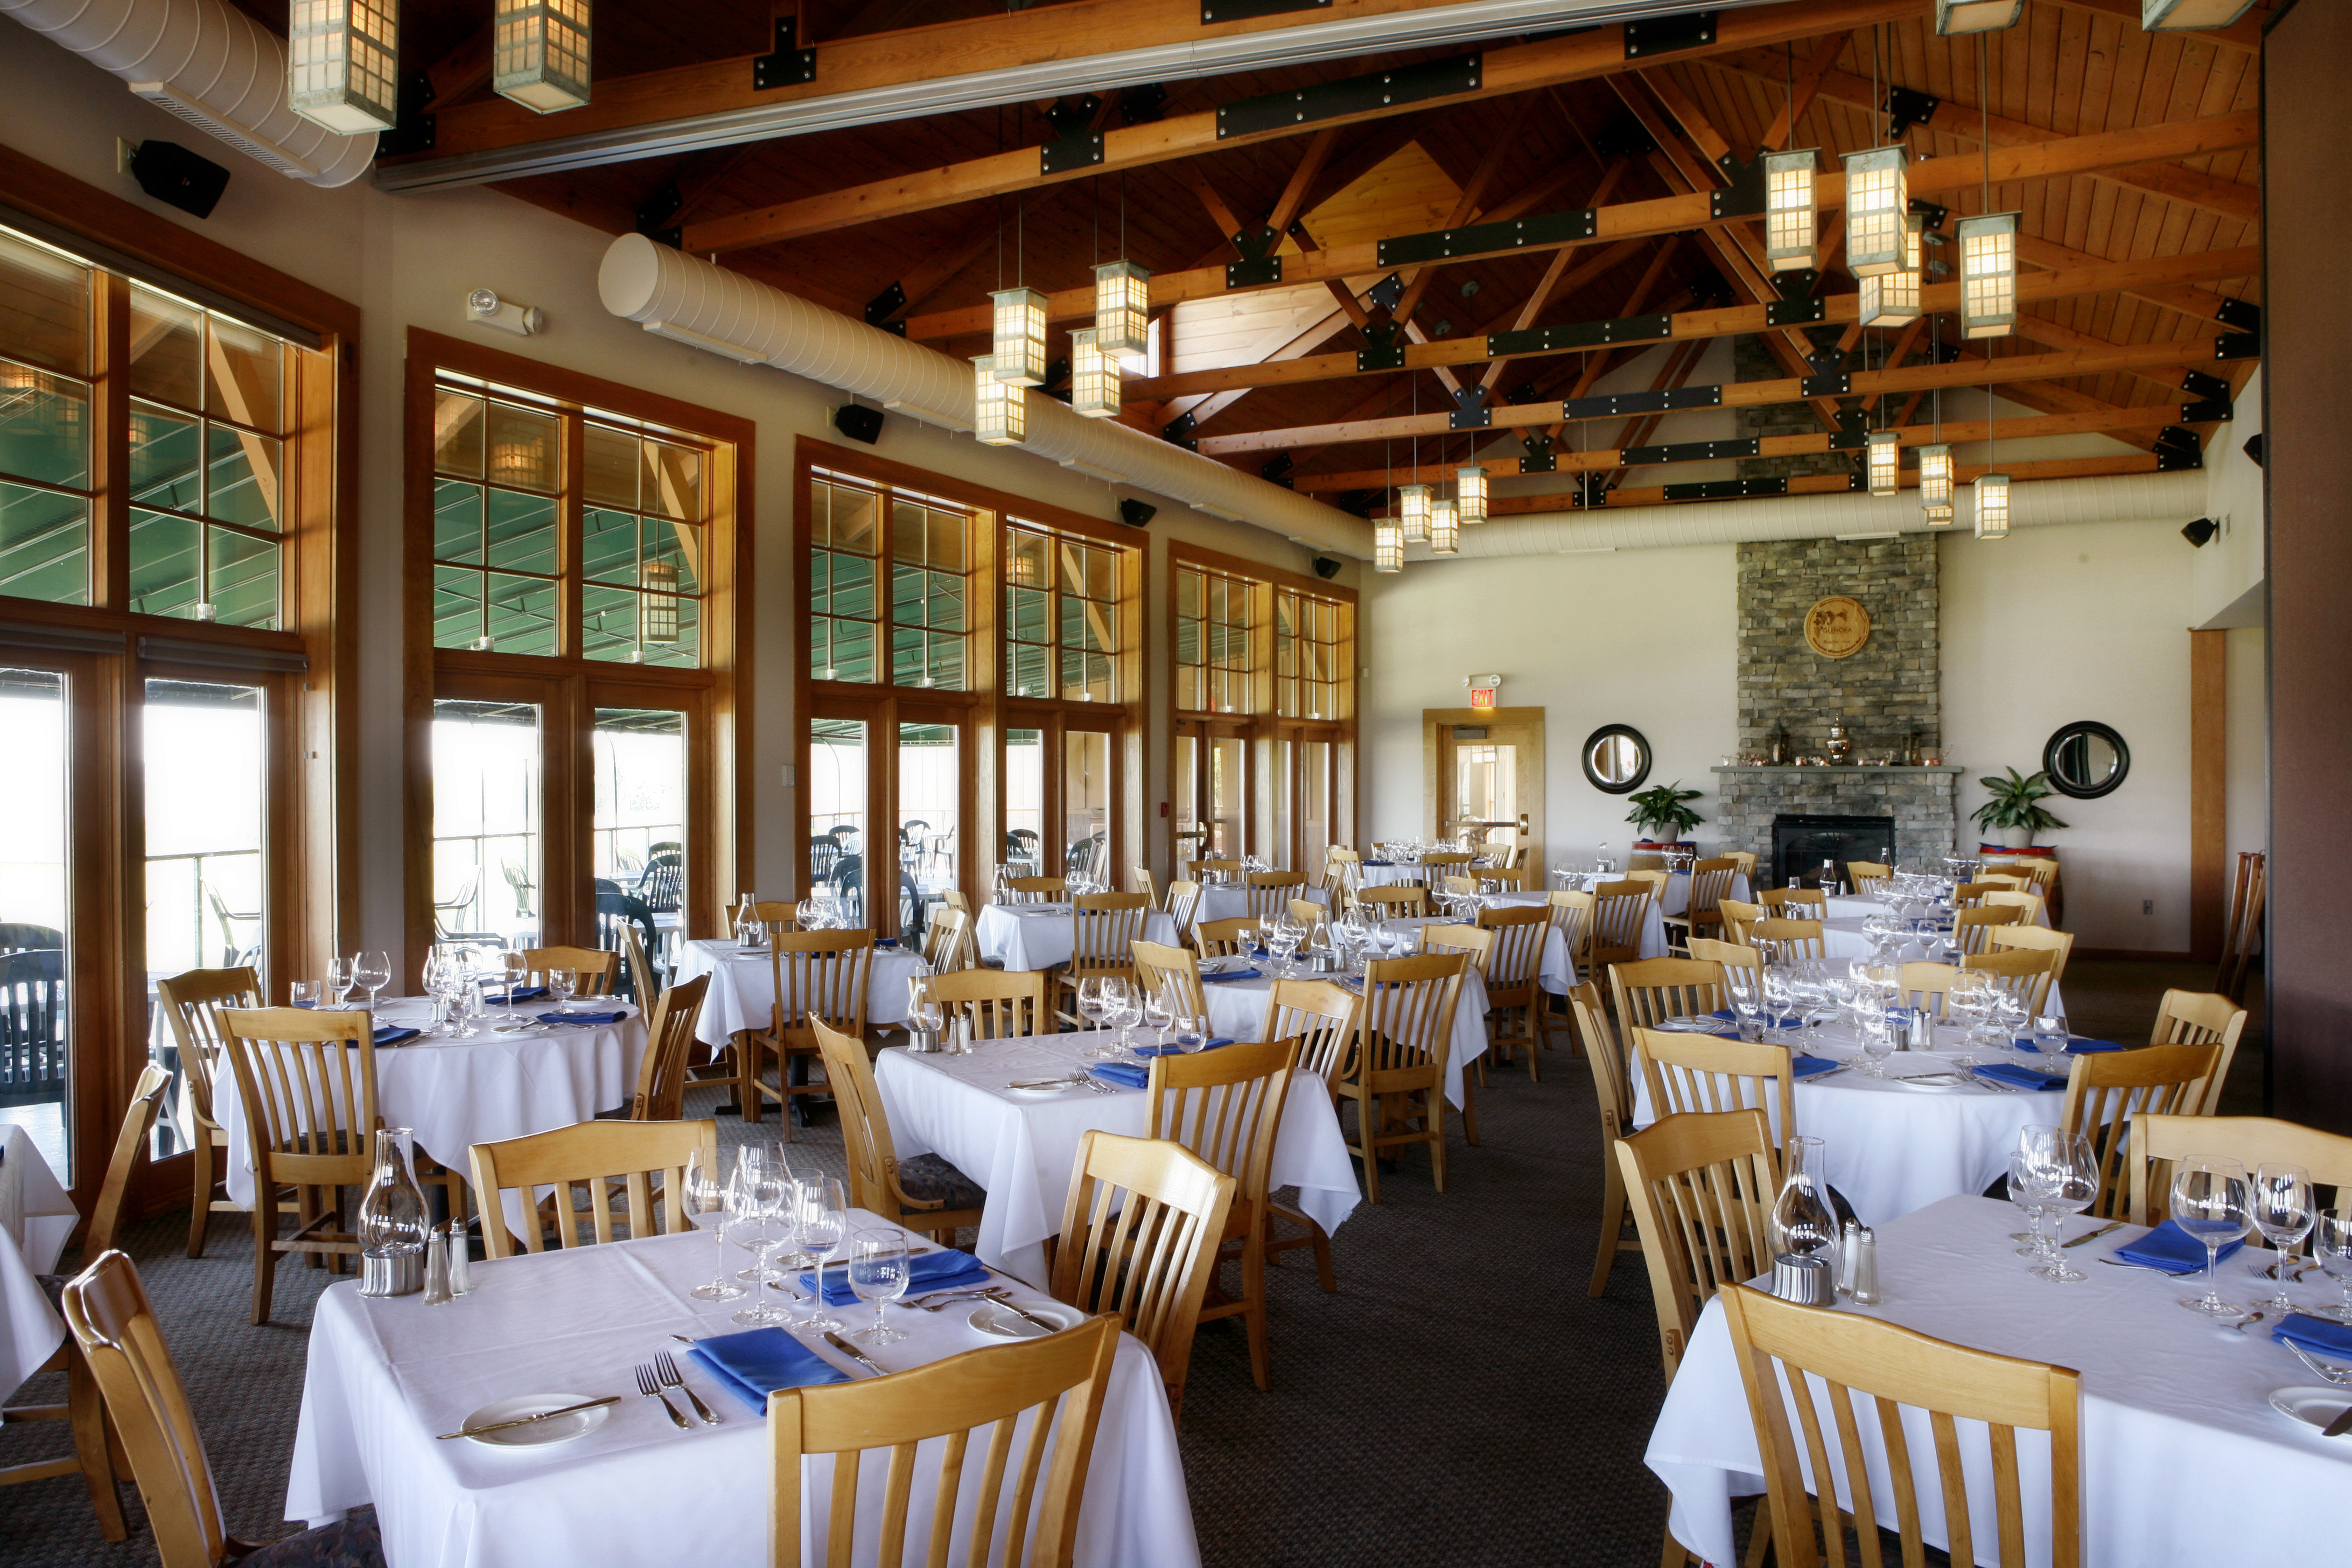 See Photo. & Glenora Wine Cellars - Inn - Meetings and Conferences